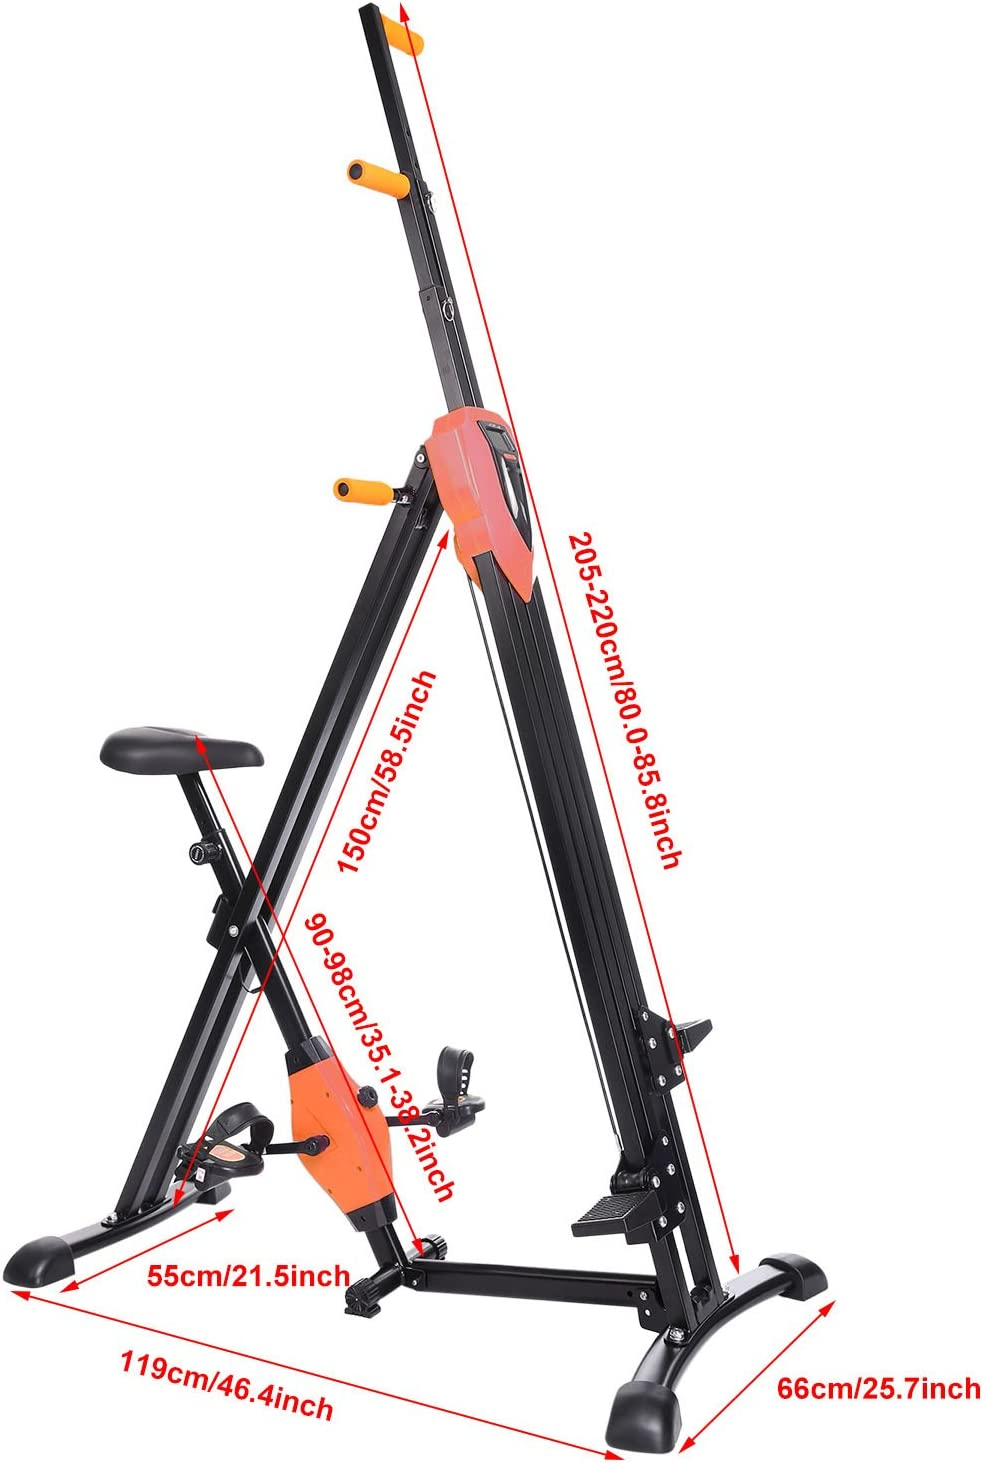 Folding Exercise Climbing Machine,Total Body Workout Climber Machine for Home Gym Flyerstoy Vertical Climber Cardio Exercise Exercise Bike for Home Body Trainer